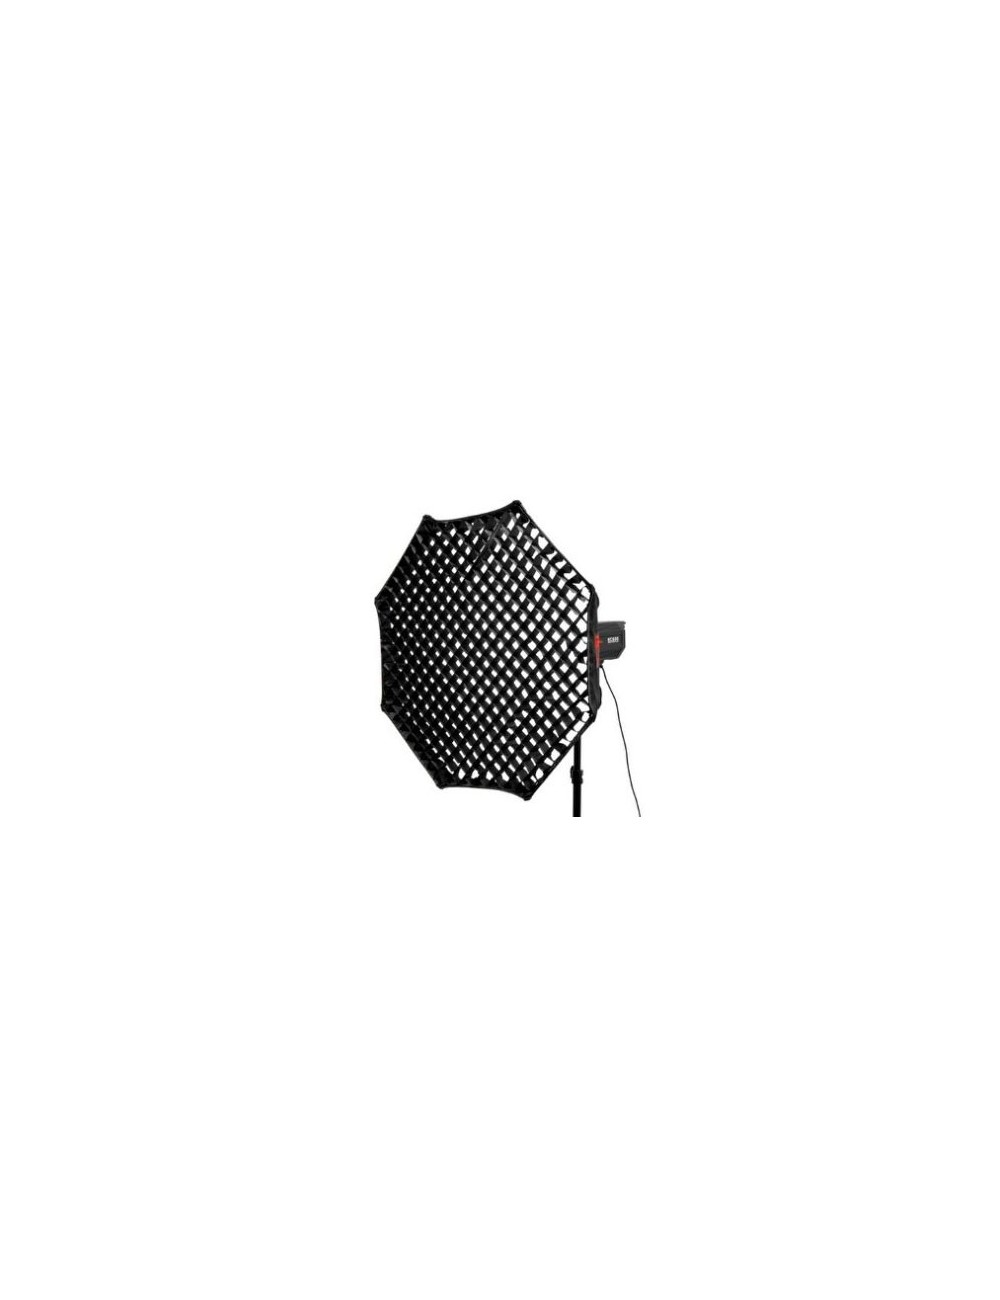 Beauty dish BD-60 Grid